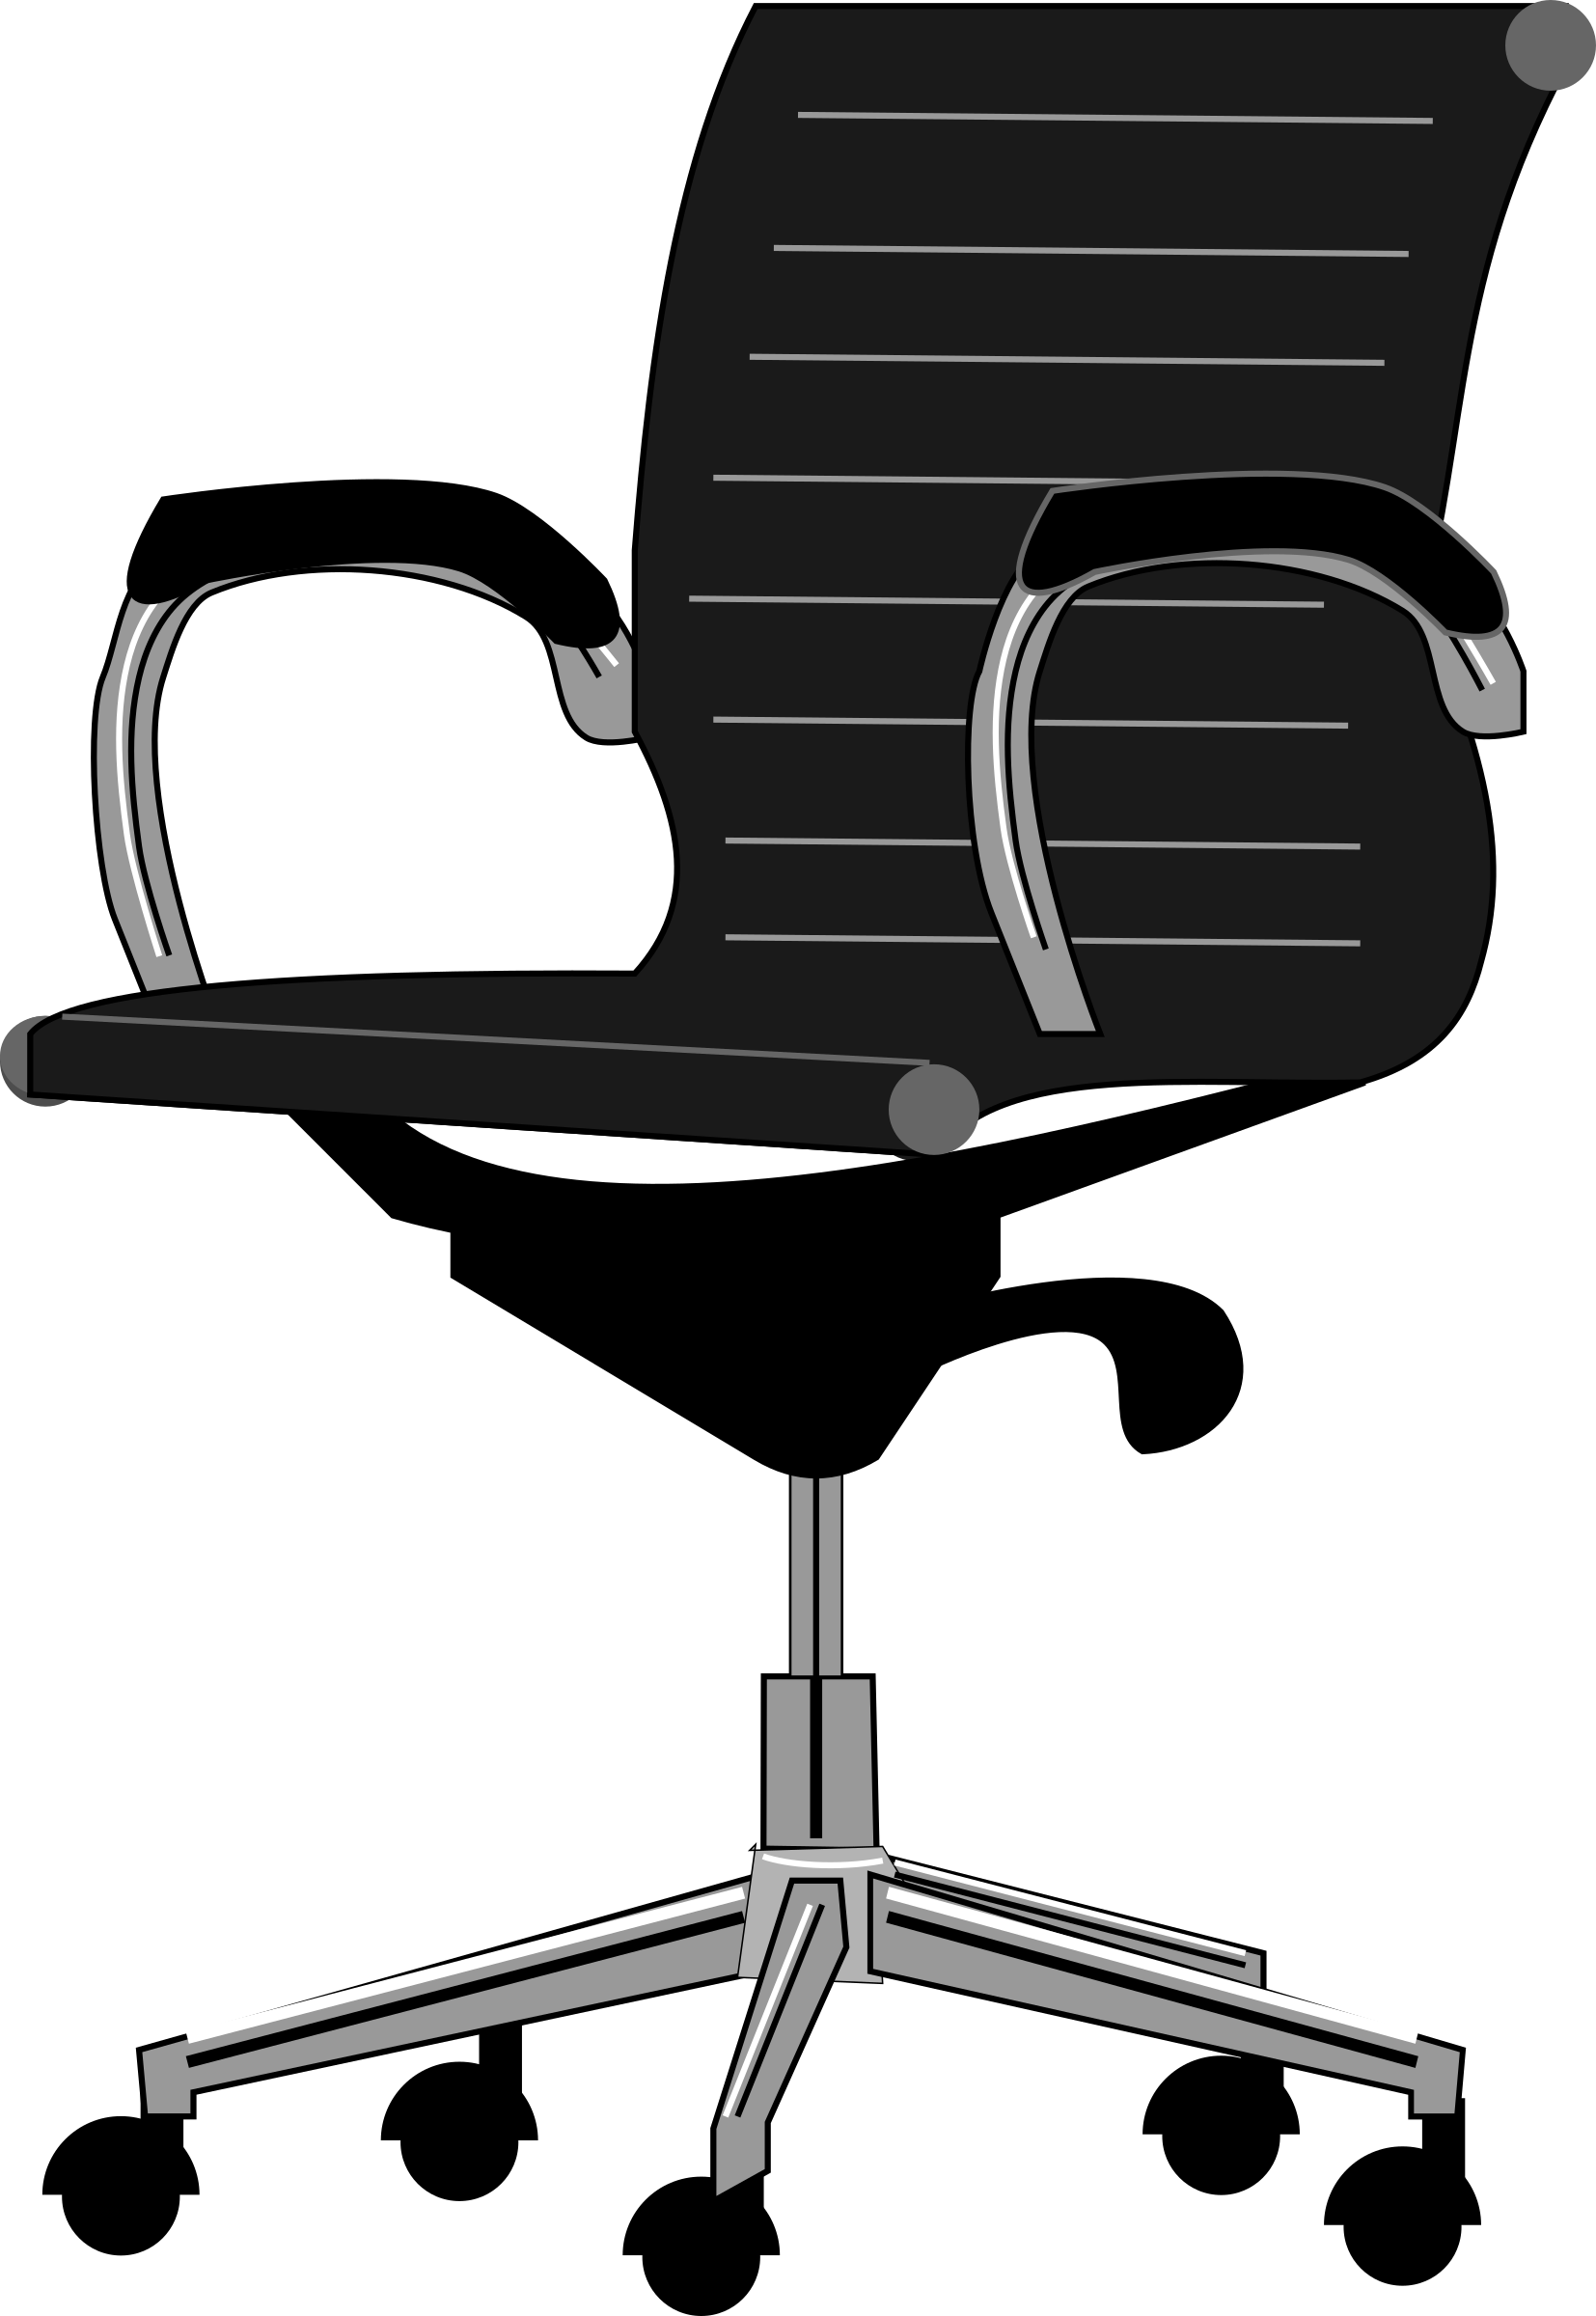 School chair clipart black and white free 28+ Collection of Office Chair Clipart Black And White | High ... free